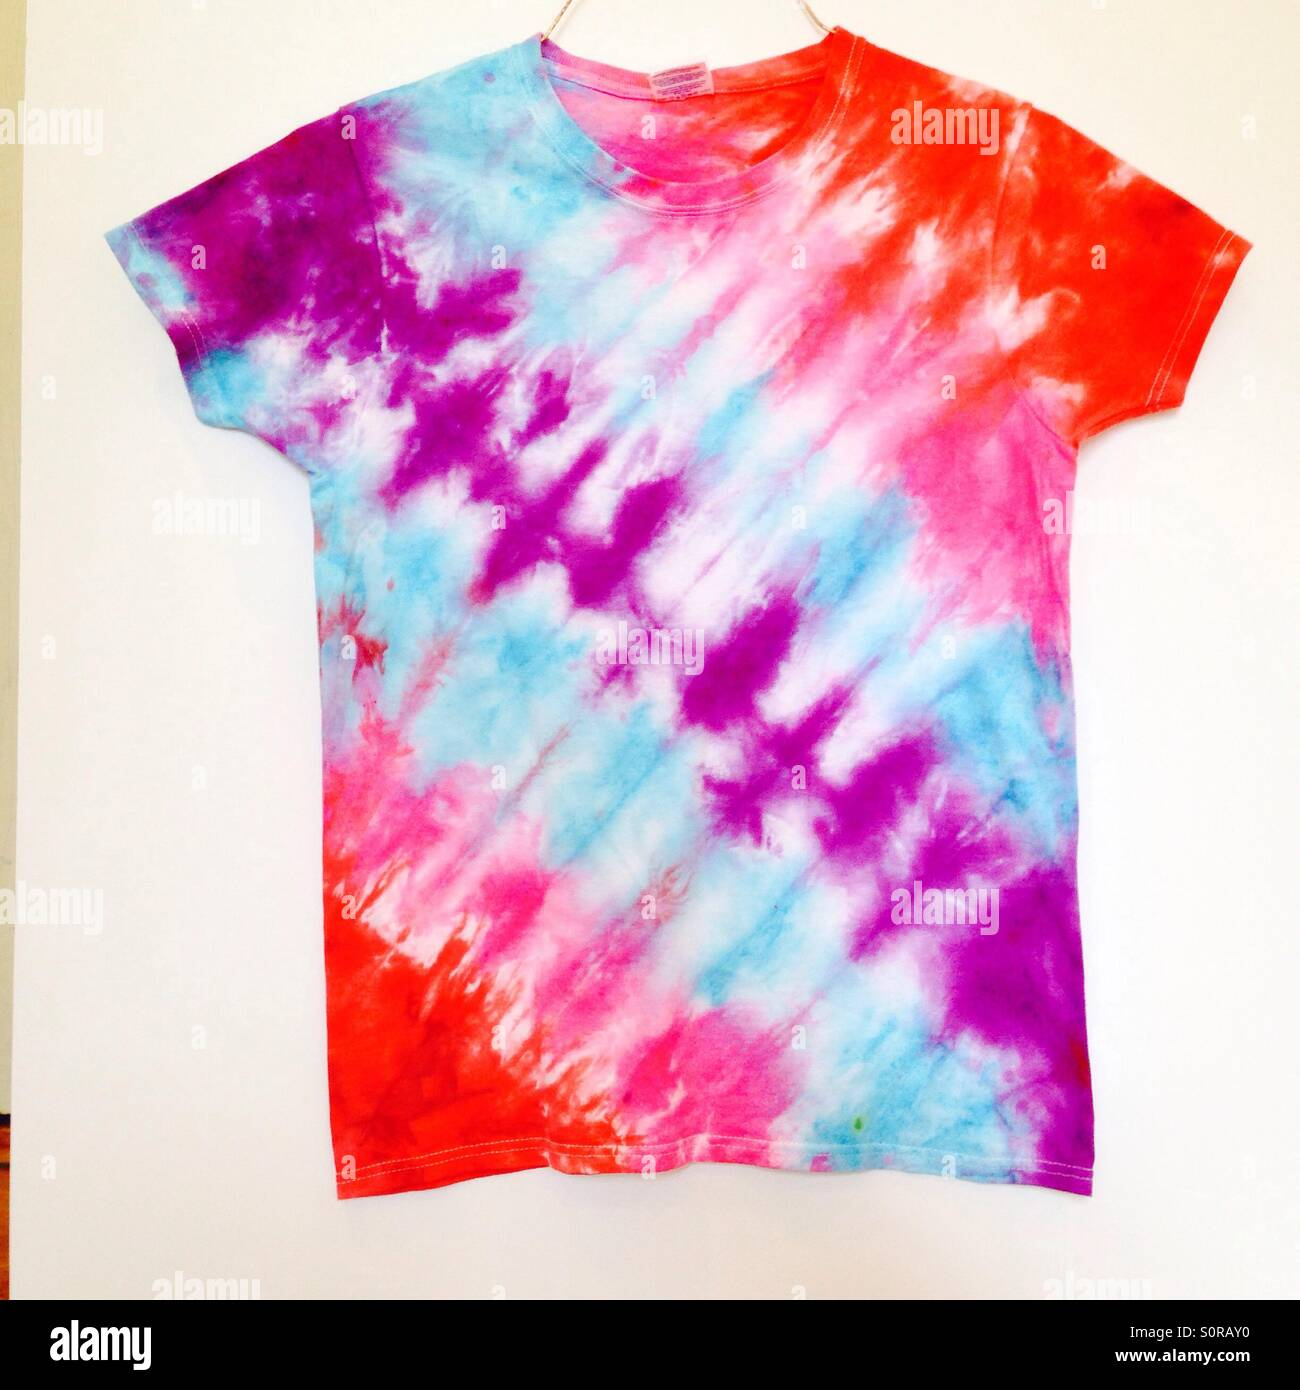 054a31d8 Tie Dye Shirt Stock Photo: 310300116 - Alamy